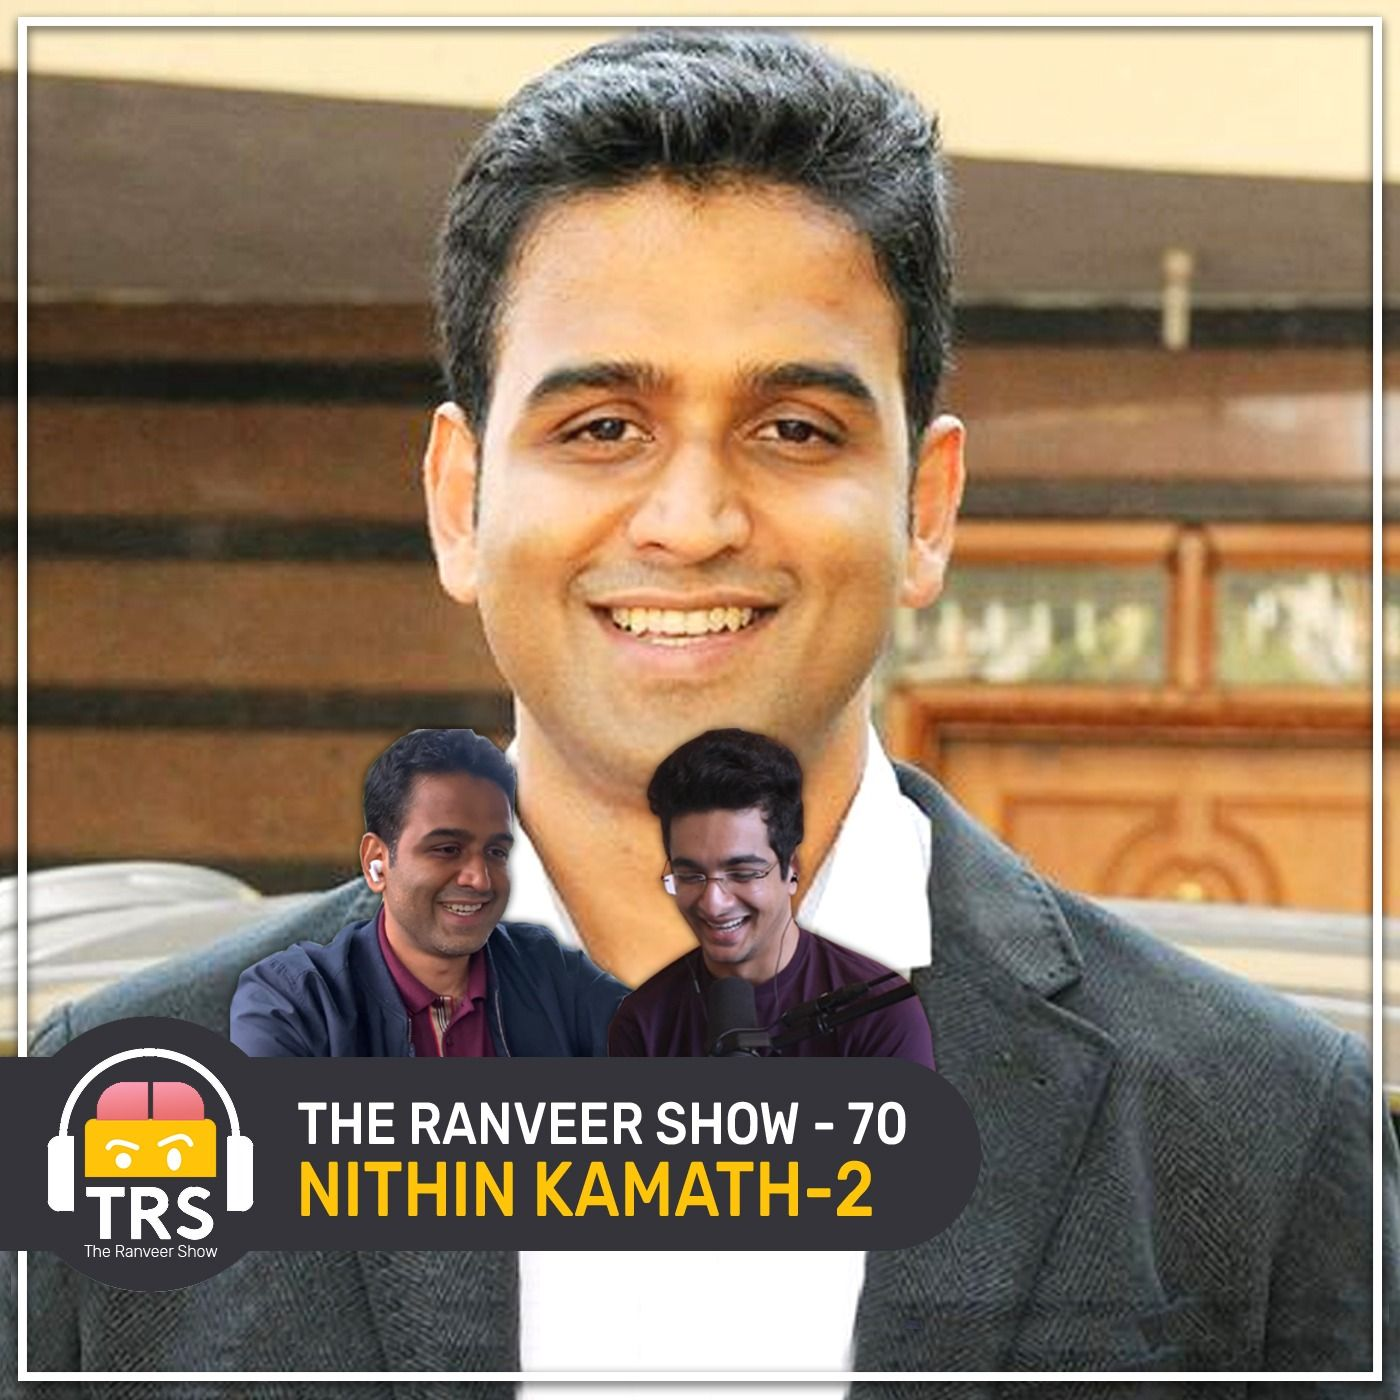 Nithin Kamath On Personal Finance, Stock Markets And Entrepreneurship Hacks | The Ranveer Show 70